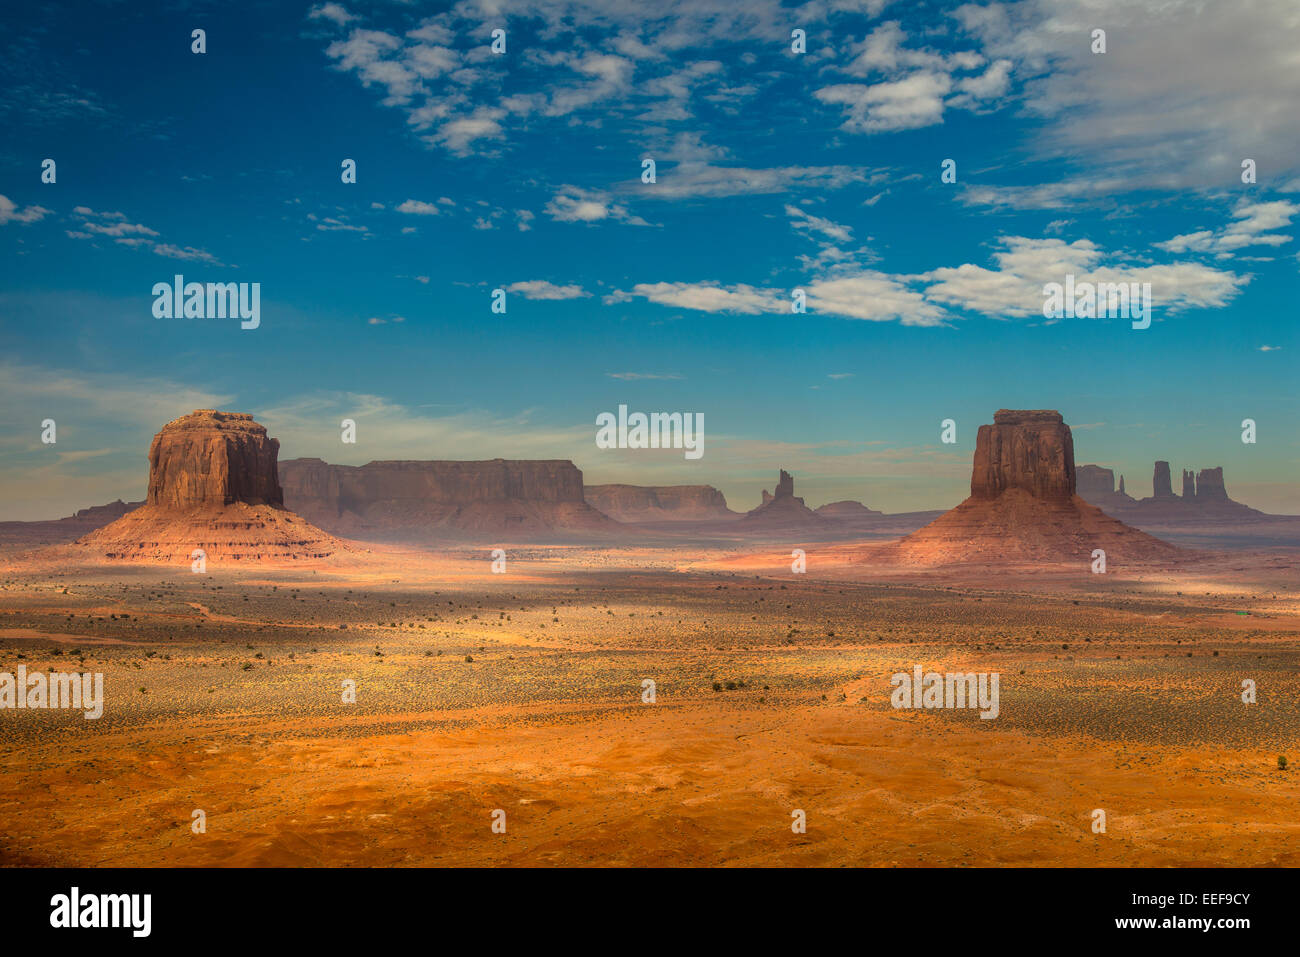 Scenic view from Artist's Point, Monument Valley Navajo Tribal Park, Arizona, USA - Stock Image